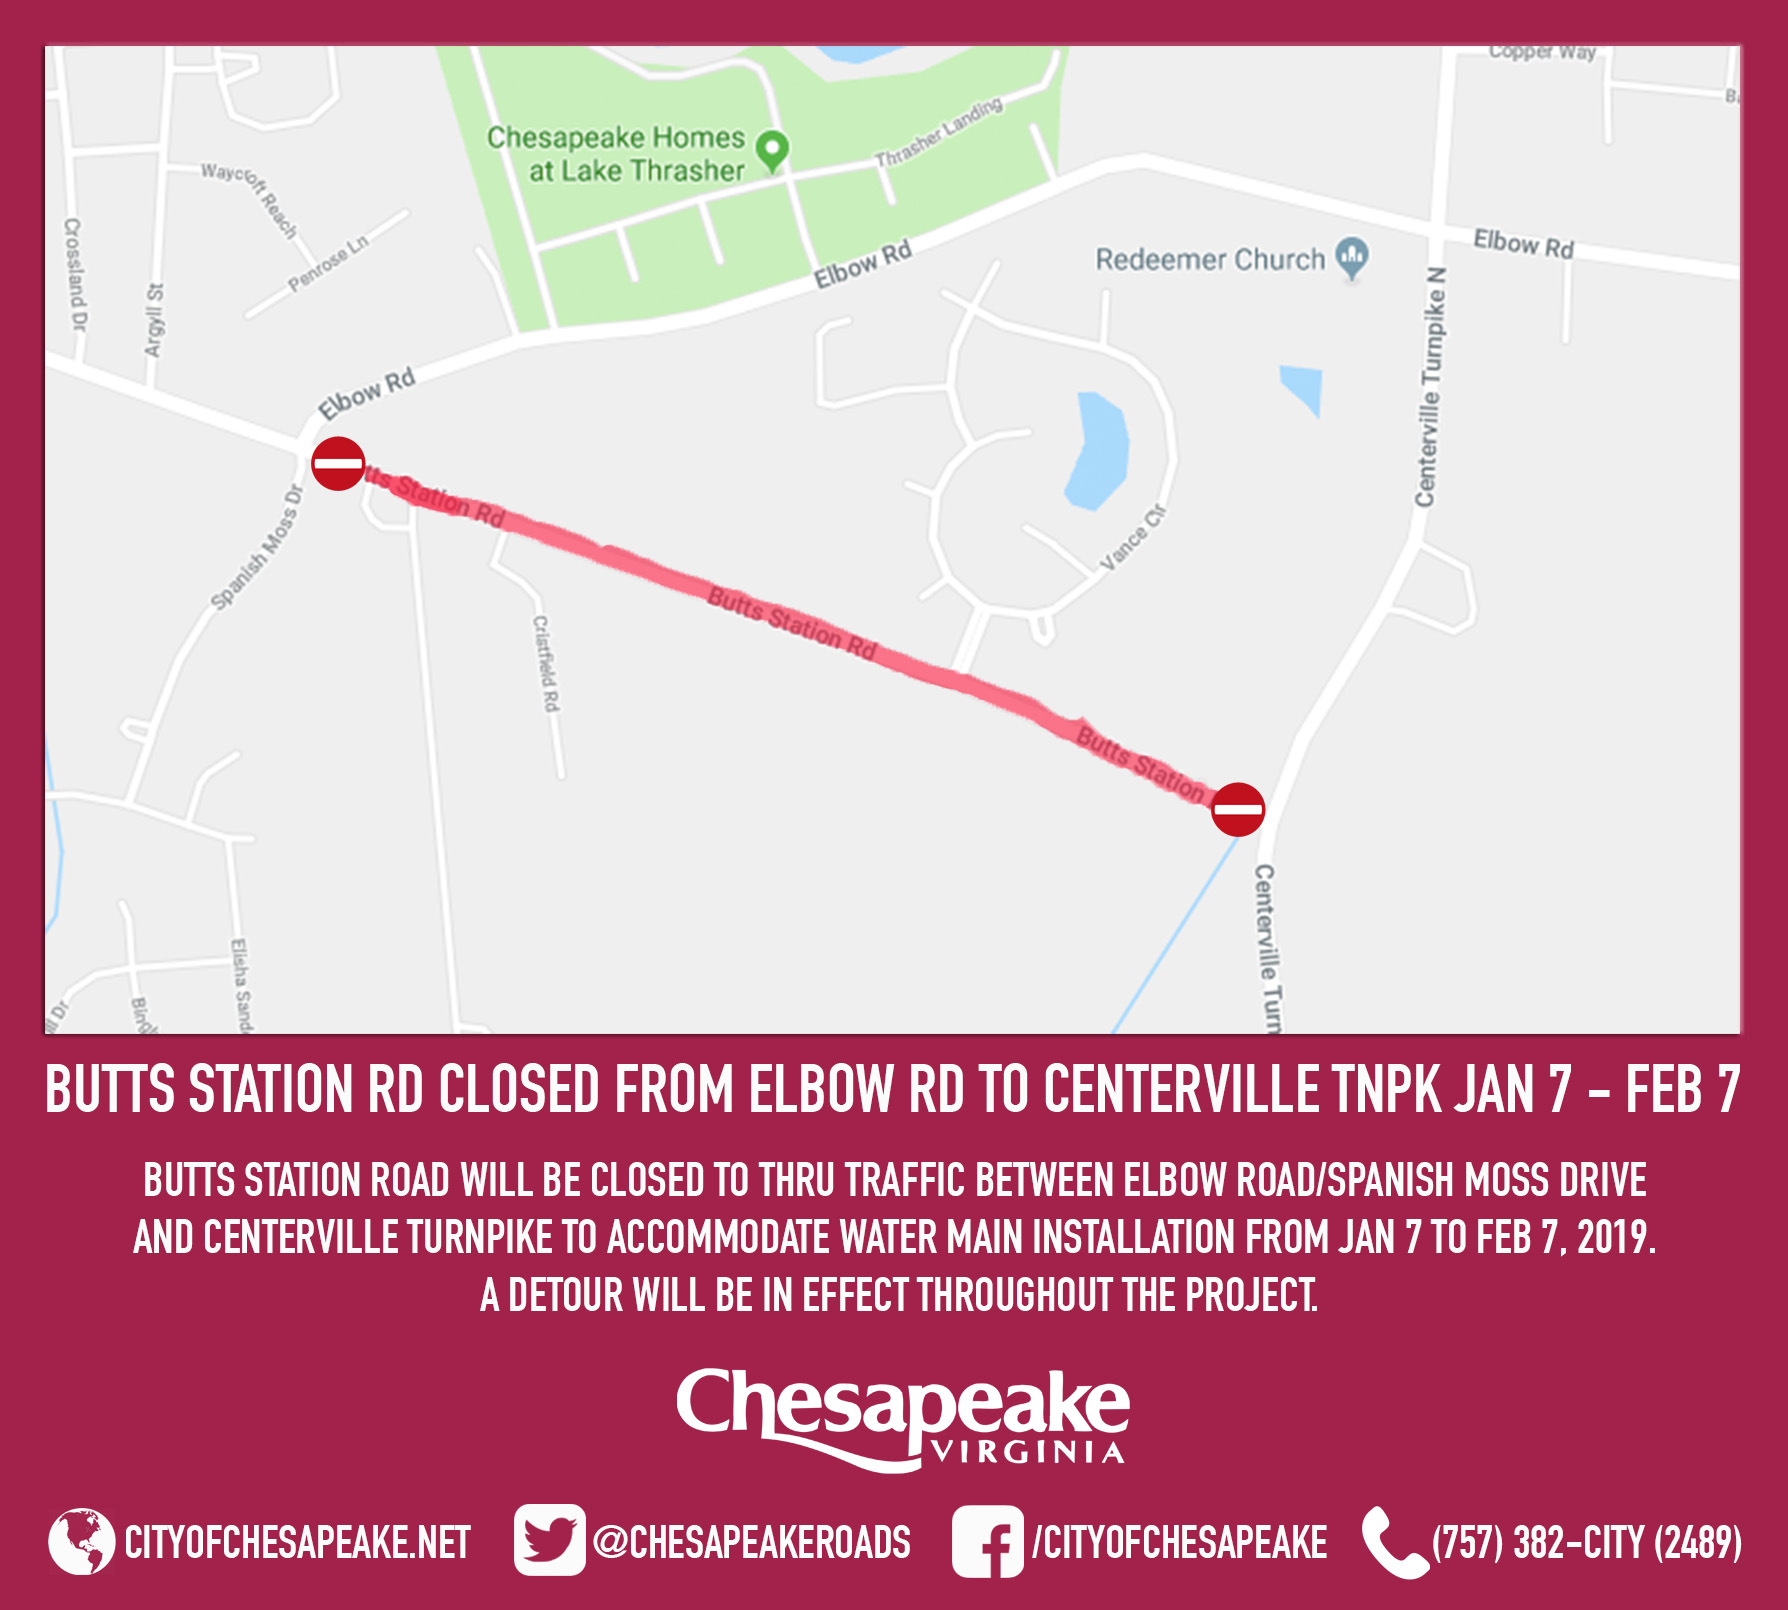 20181221 - Butts Station Rd Closure